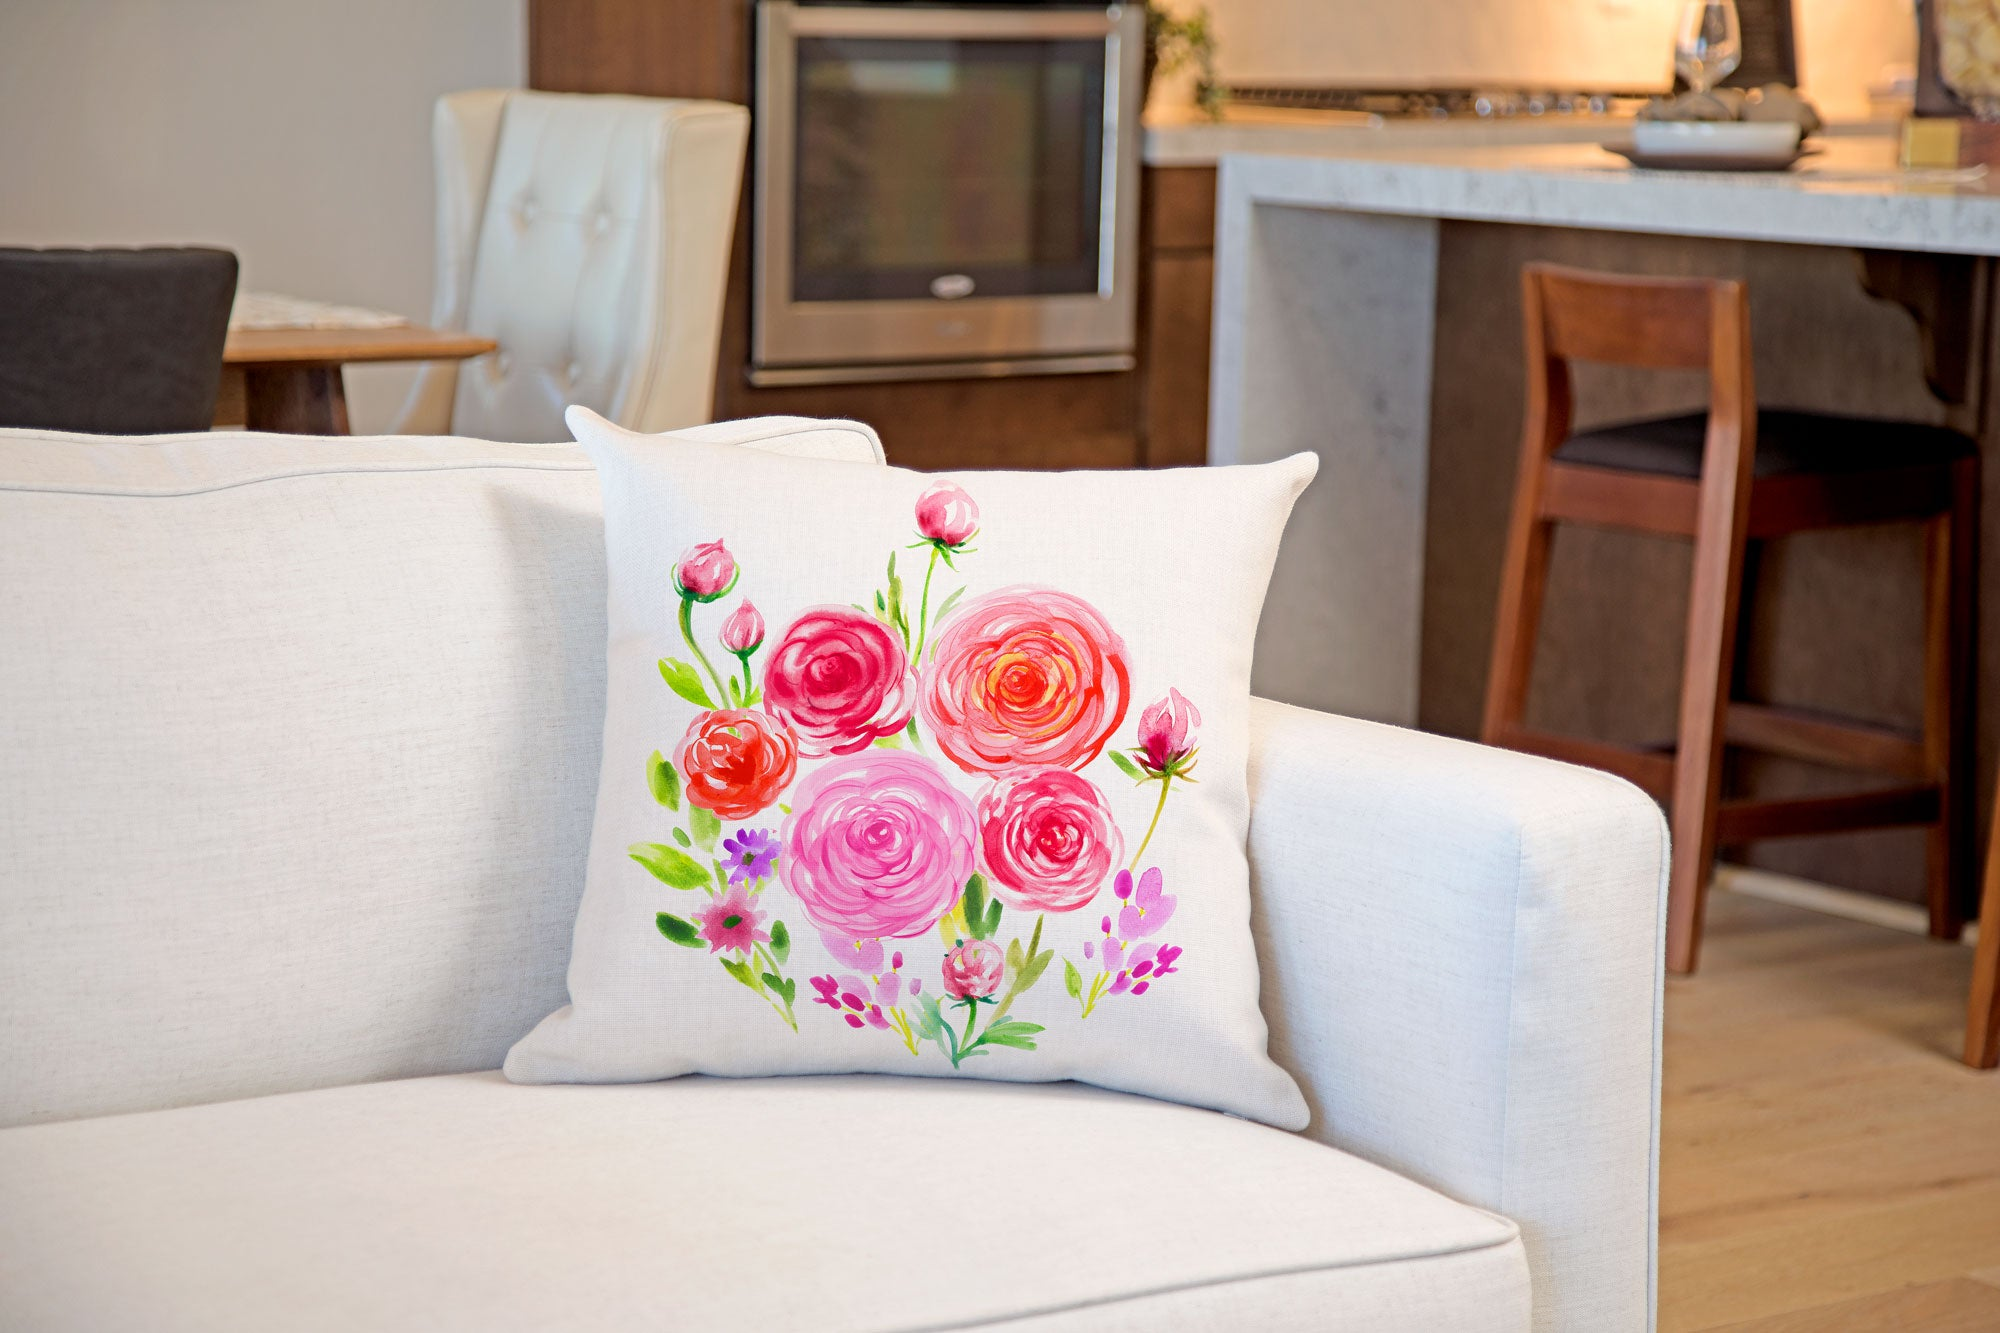 Ranunculus Throw Pillow Cover - Decorative Designs Throw Pillow Cover Collection